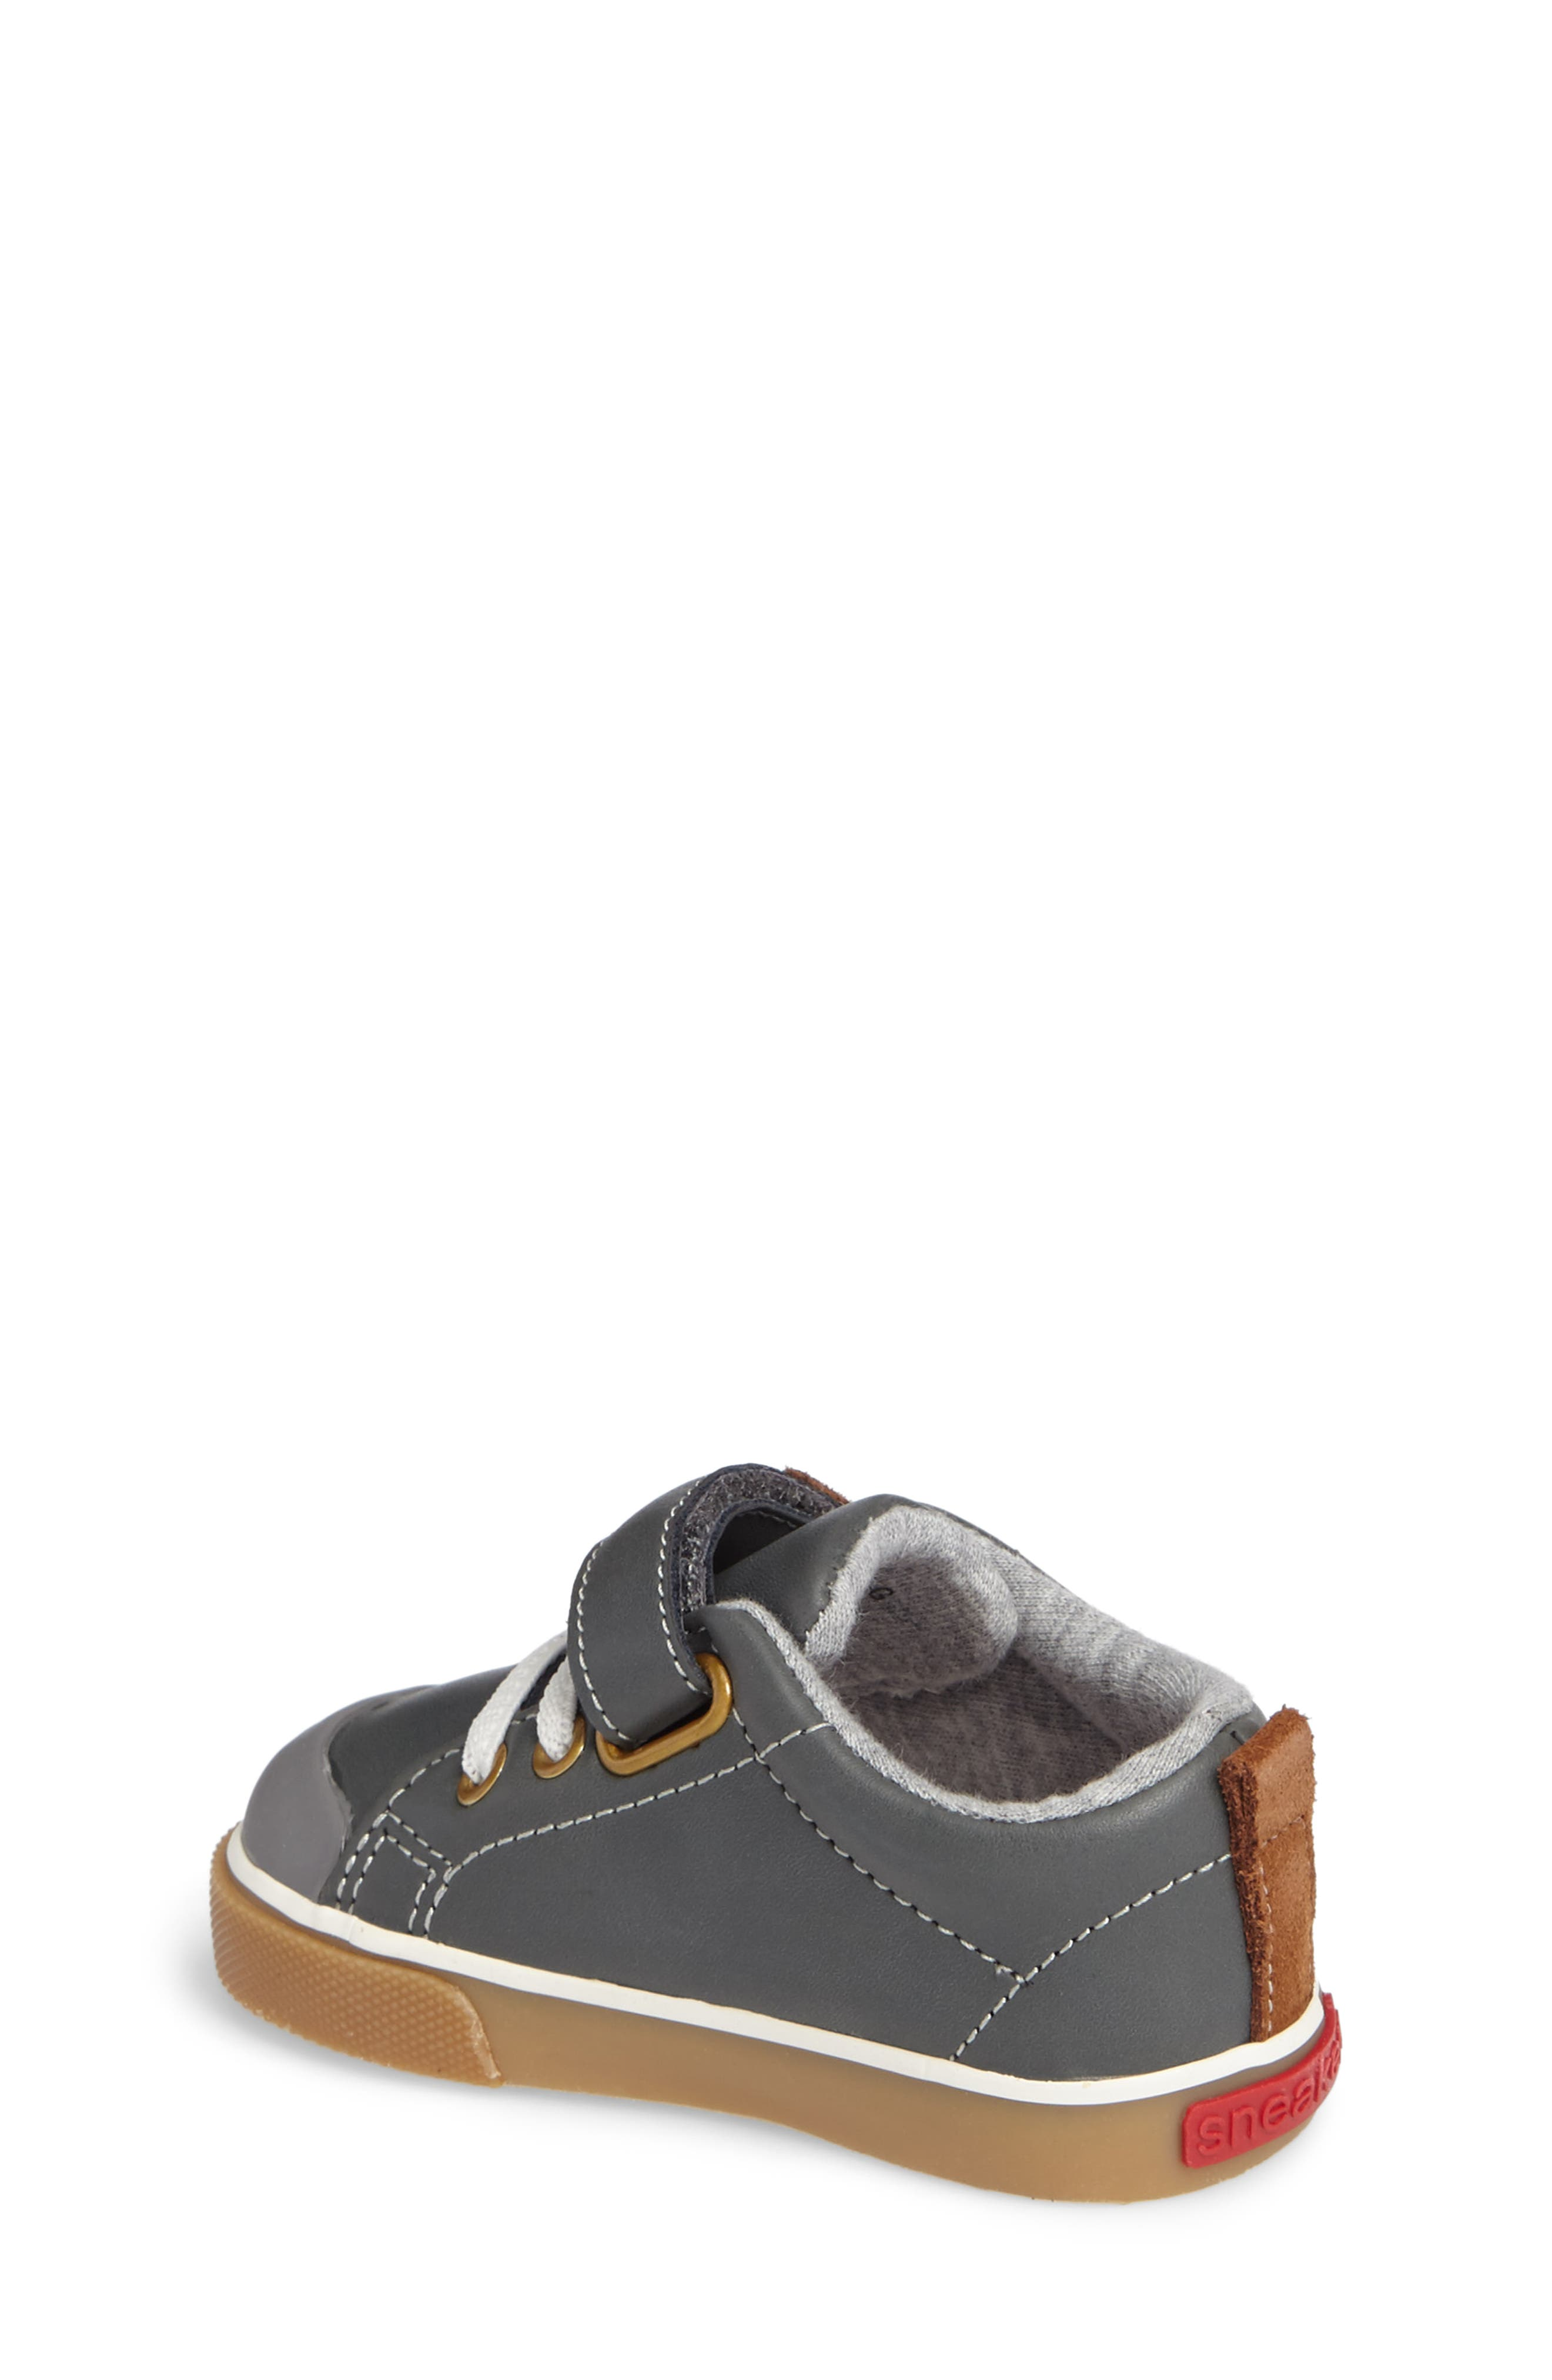 Stevie II Sneaker,                             Alternate thumbnail 2, color,                             Grey Leather